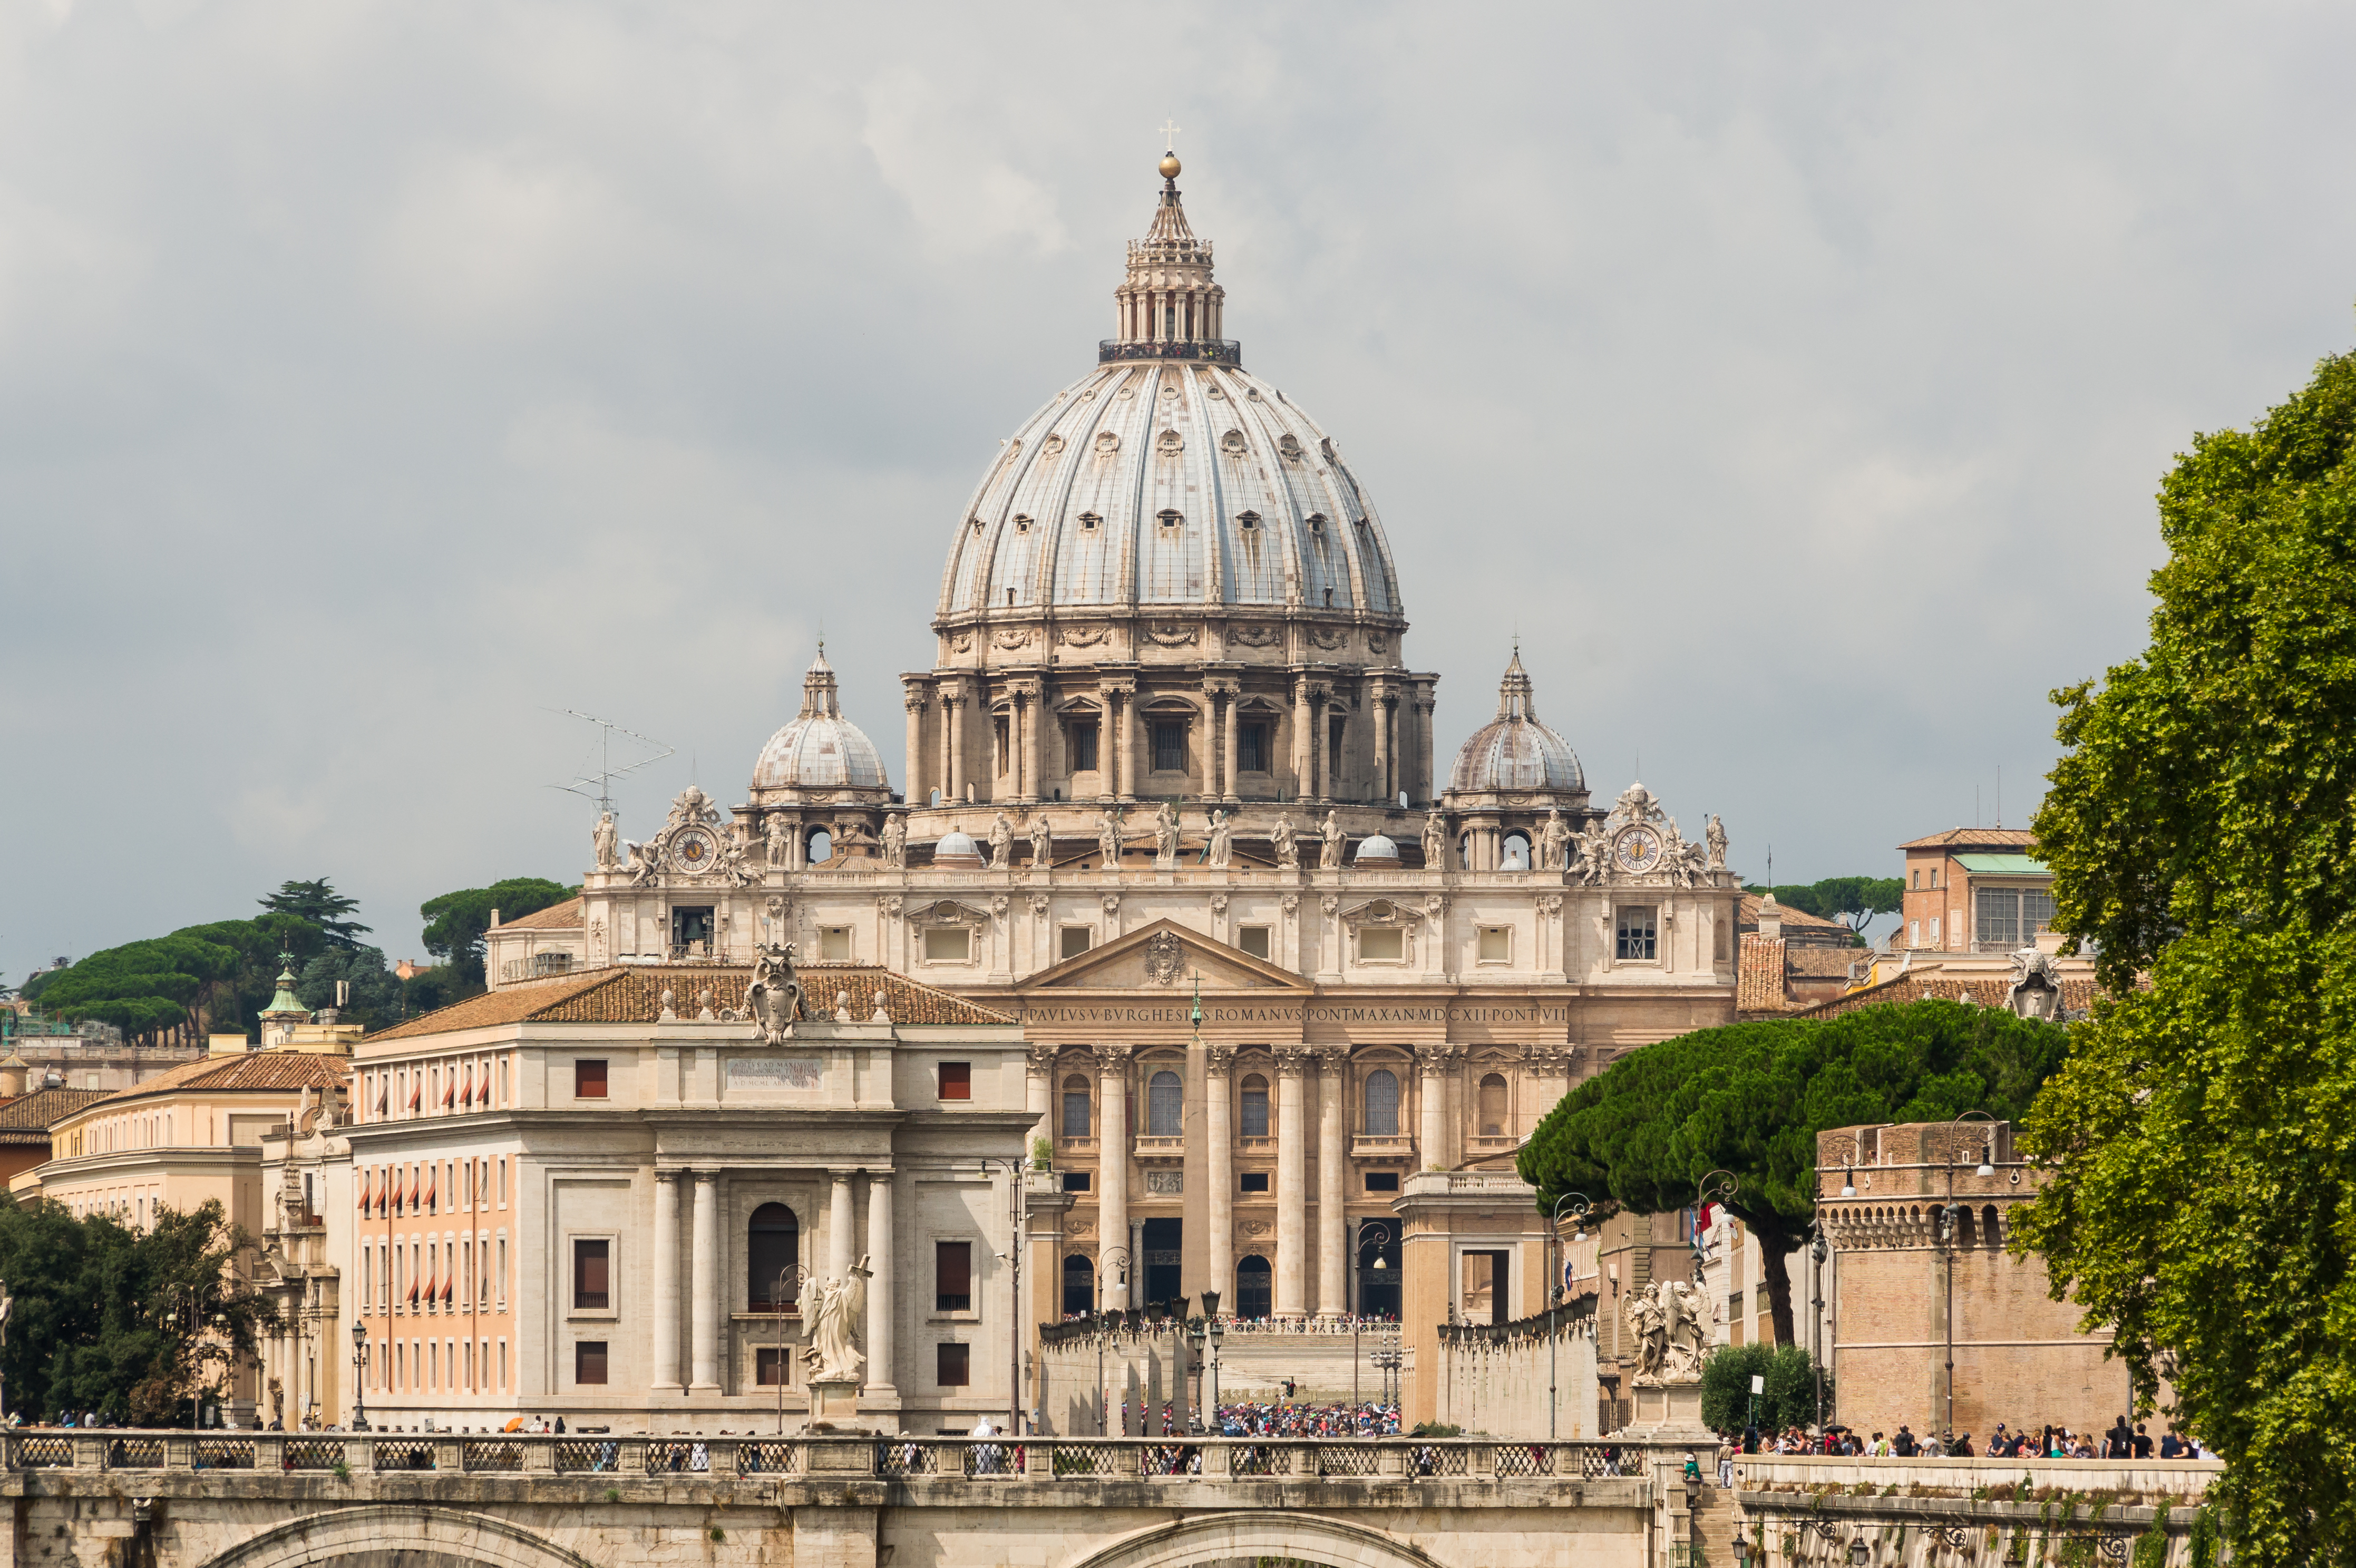 What Is The Coast Of Saint Peter S Basilica Building